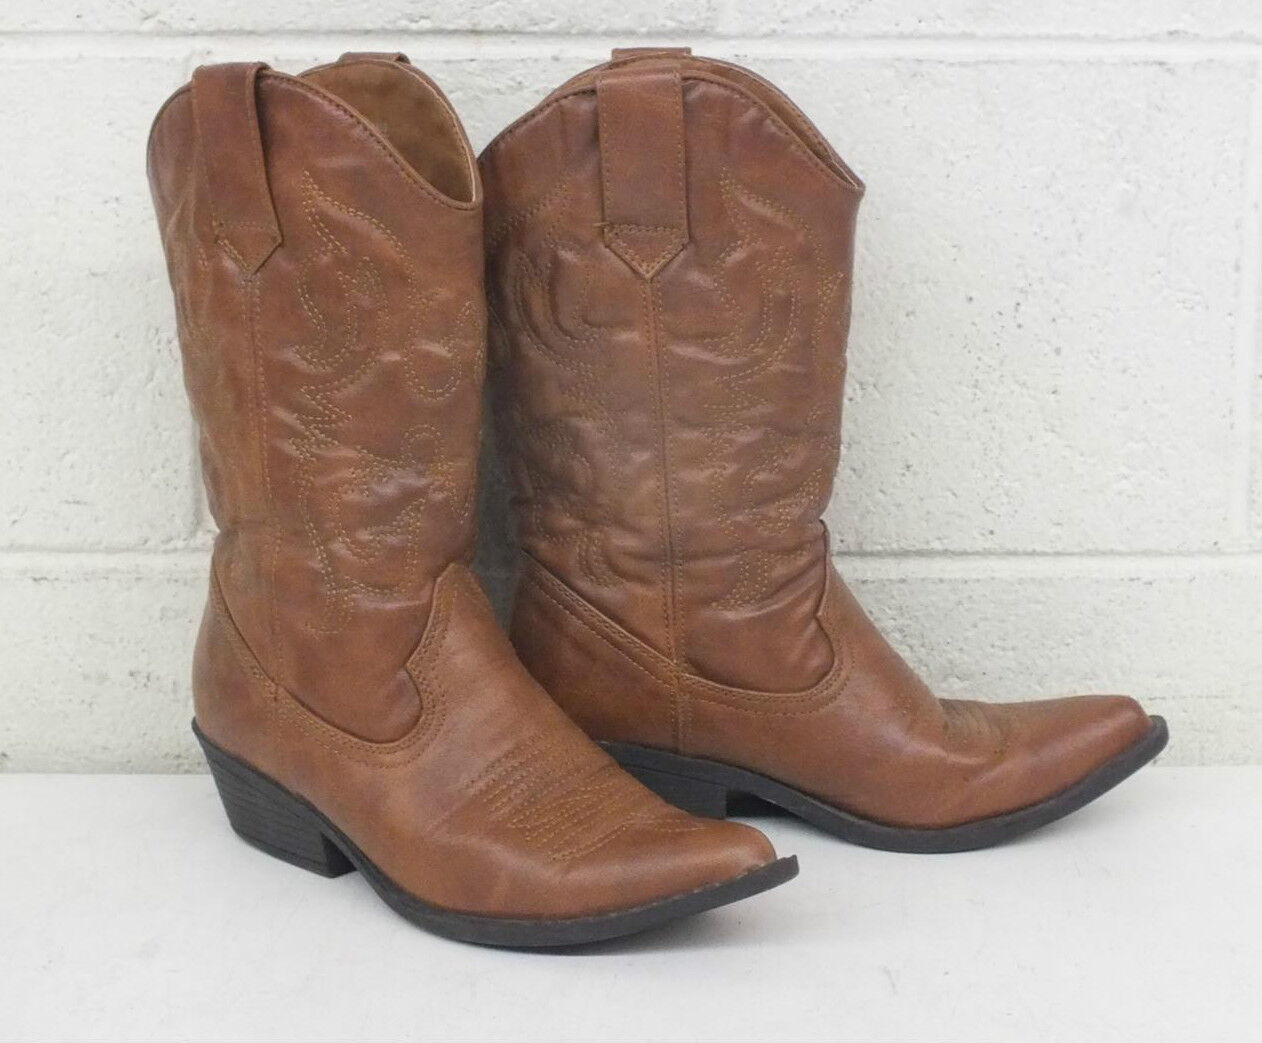 Steve Madden Sanguine Soft Brown Leather Rubber Soled Cowboy Boots US Women's 5